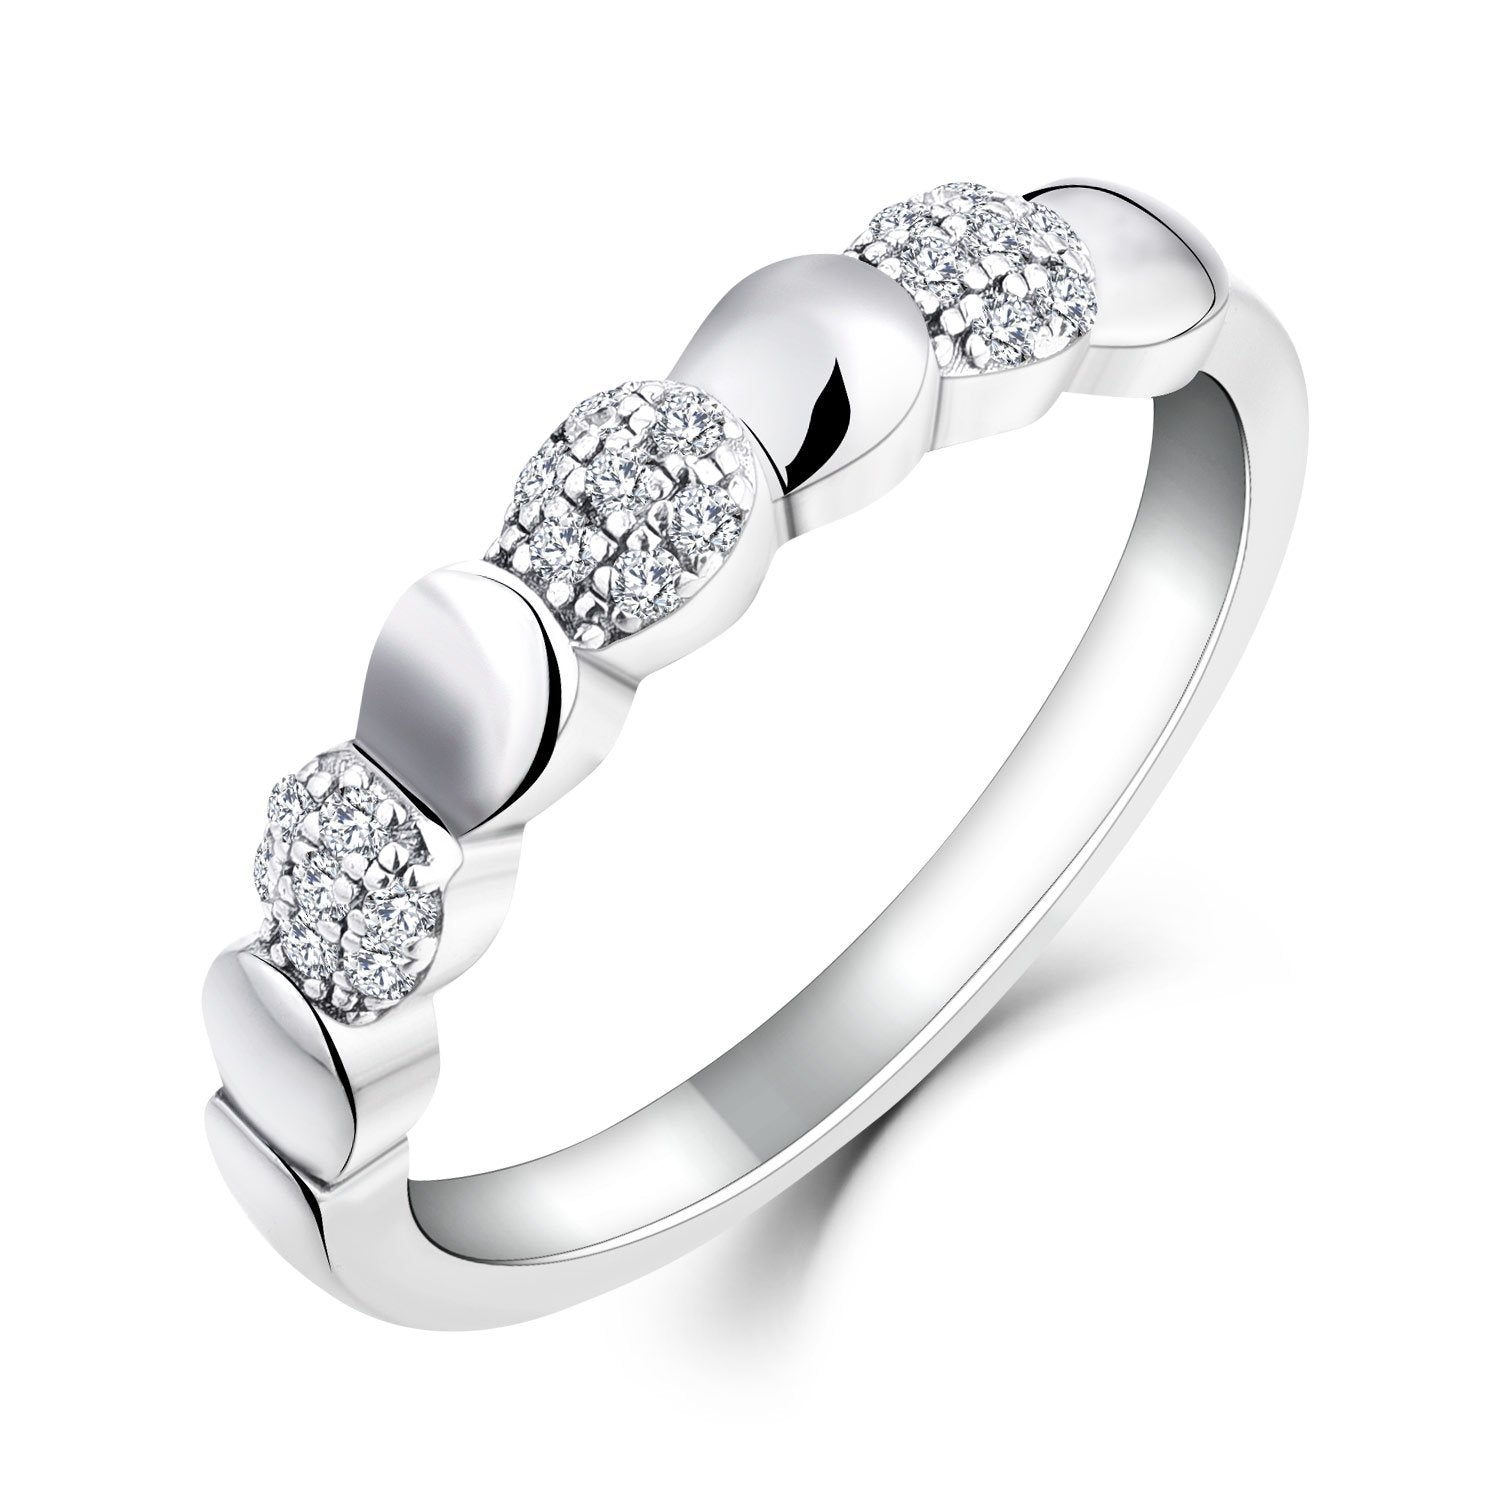 Farjary 9K White Gold Ring with 0.15cttw Diamond